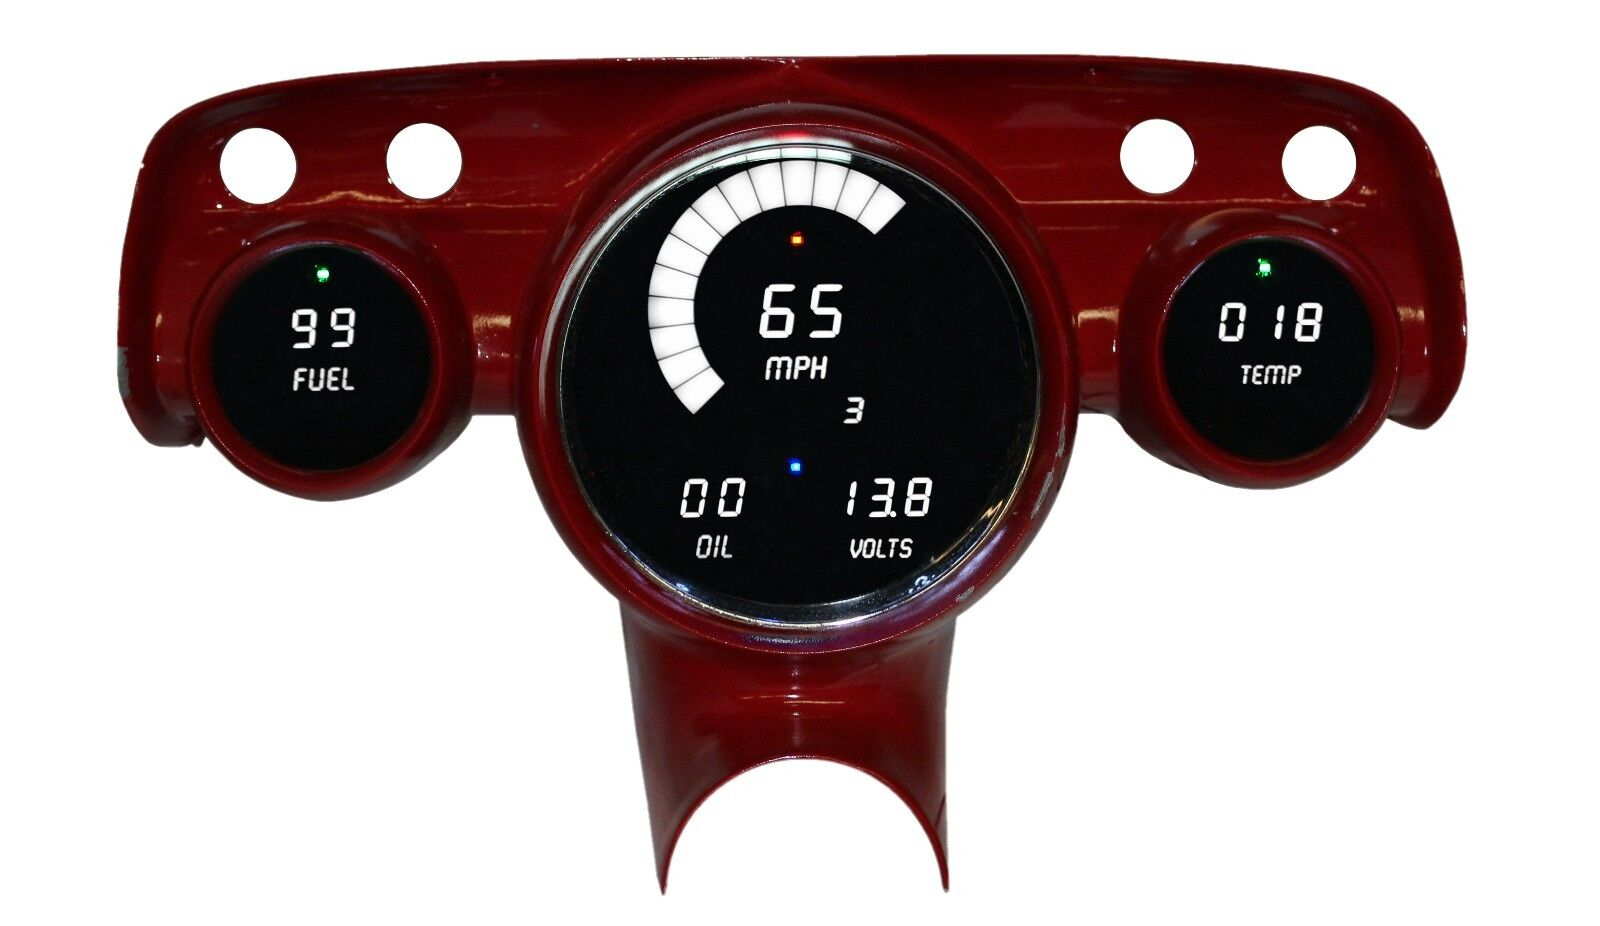 Used Chevrolet Bel Air Gauges For Sale 1957 Chevy Impala Ss Dash Intellitronix White Led Speedo Tach Combo Ls Swap